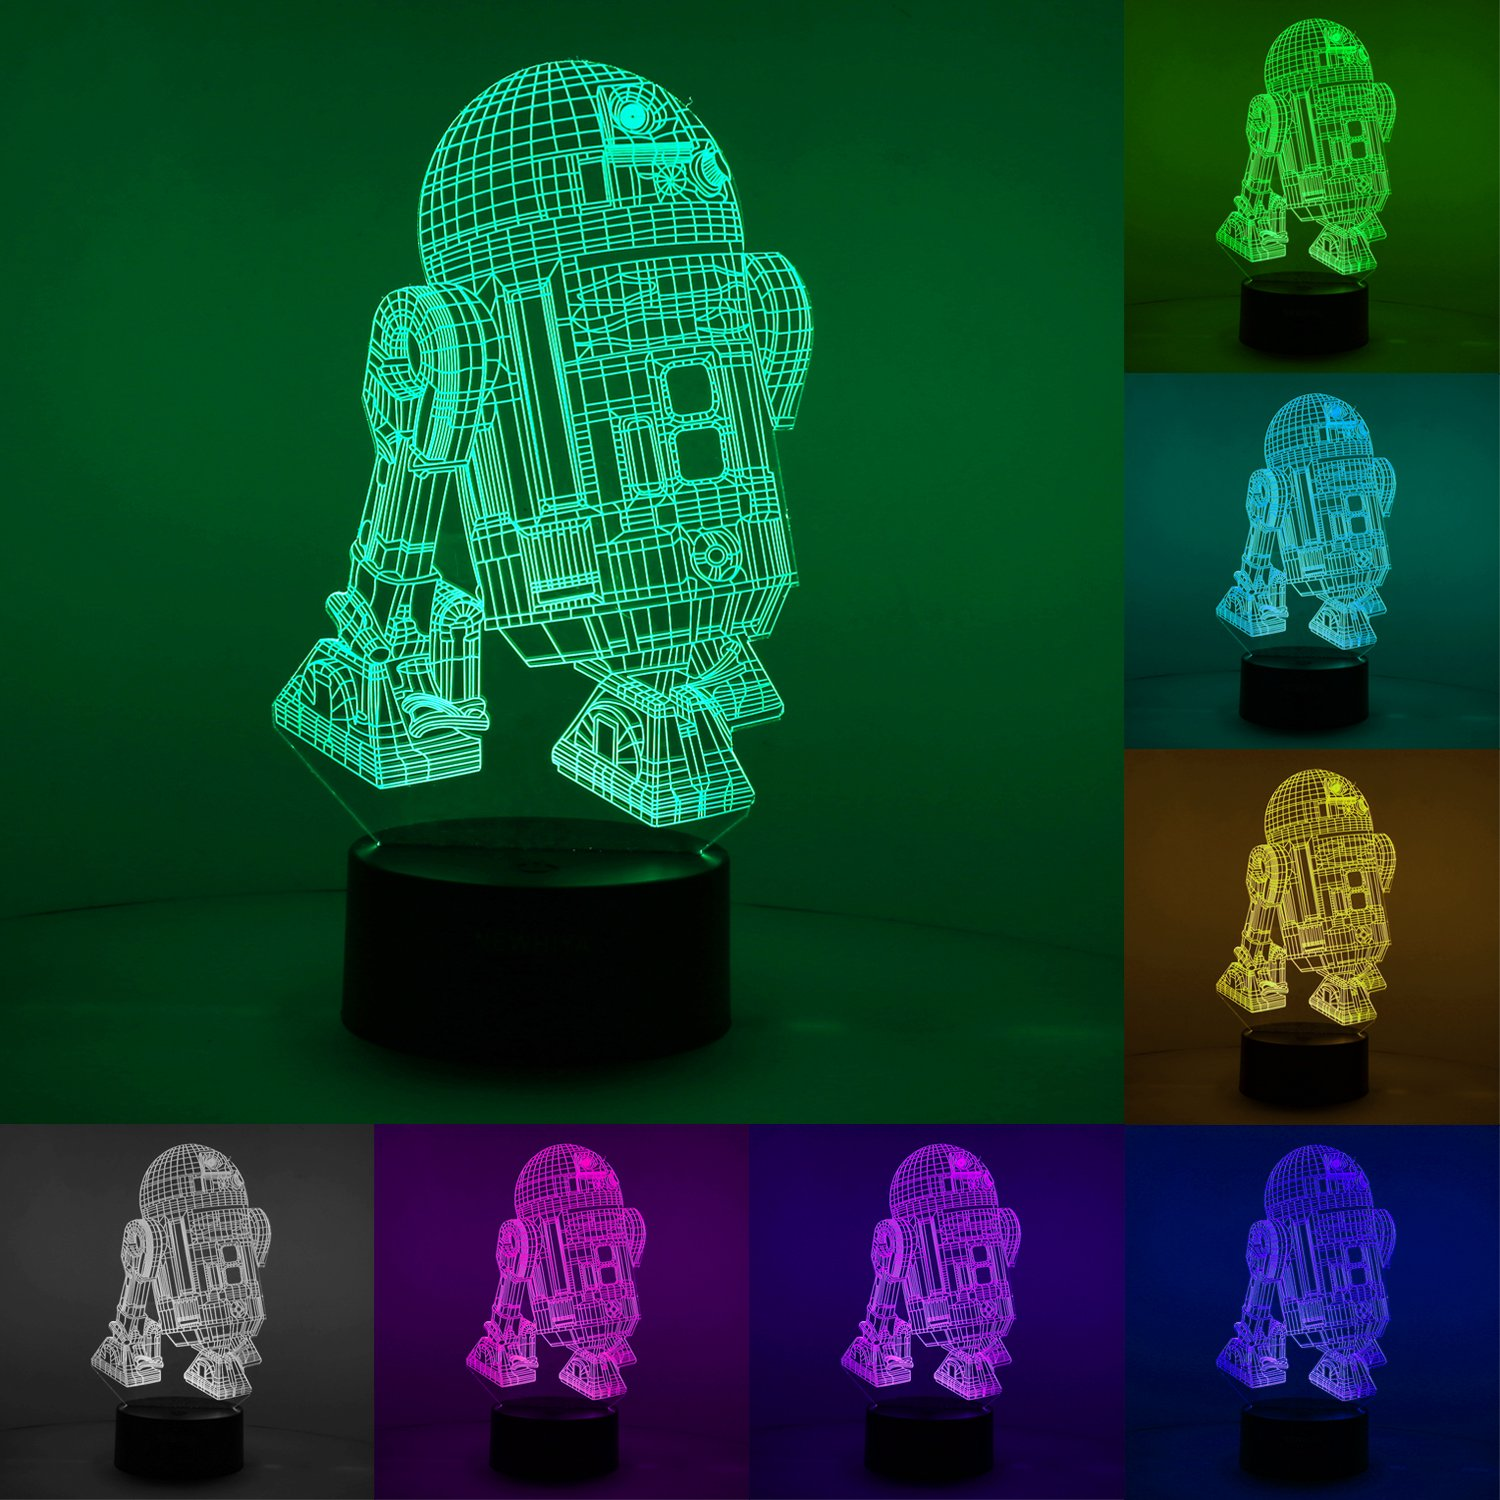 81FO61pISqL. SL1500 - 3D Illusion Star Wars Night Light, Three Pattern and 7 Color Change Decor Lamp - Perfect Gifts for Kids and Star Wars Fans